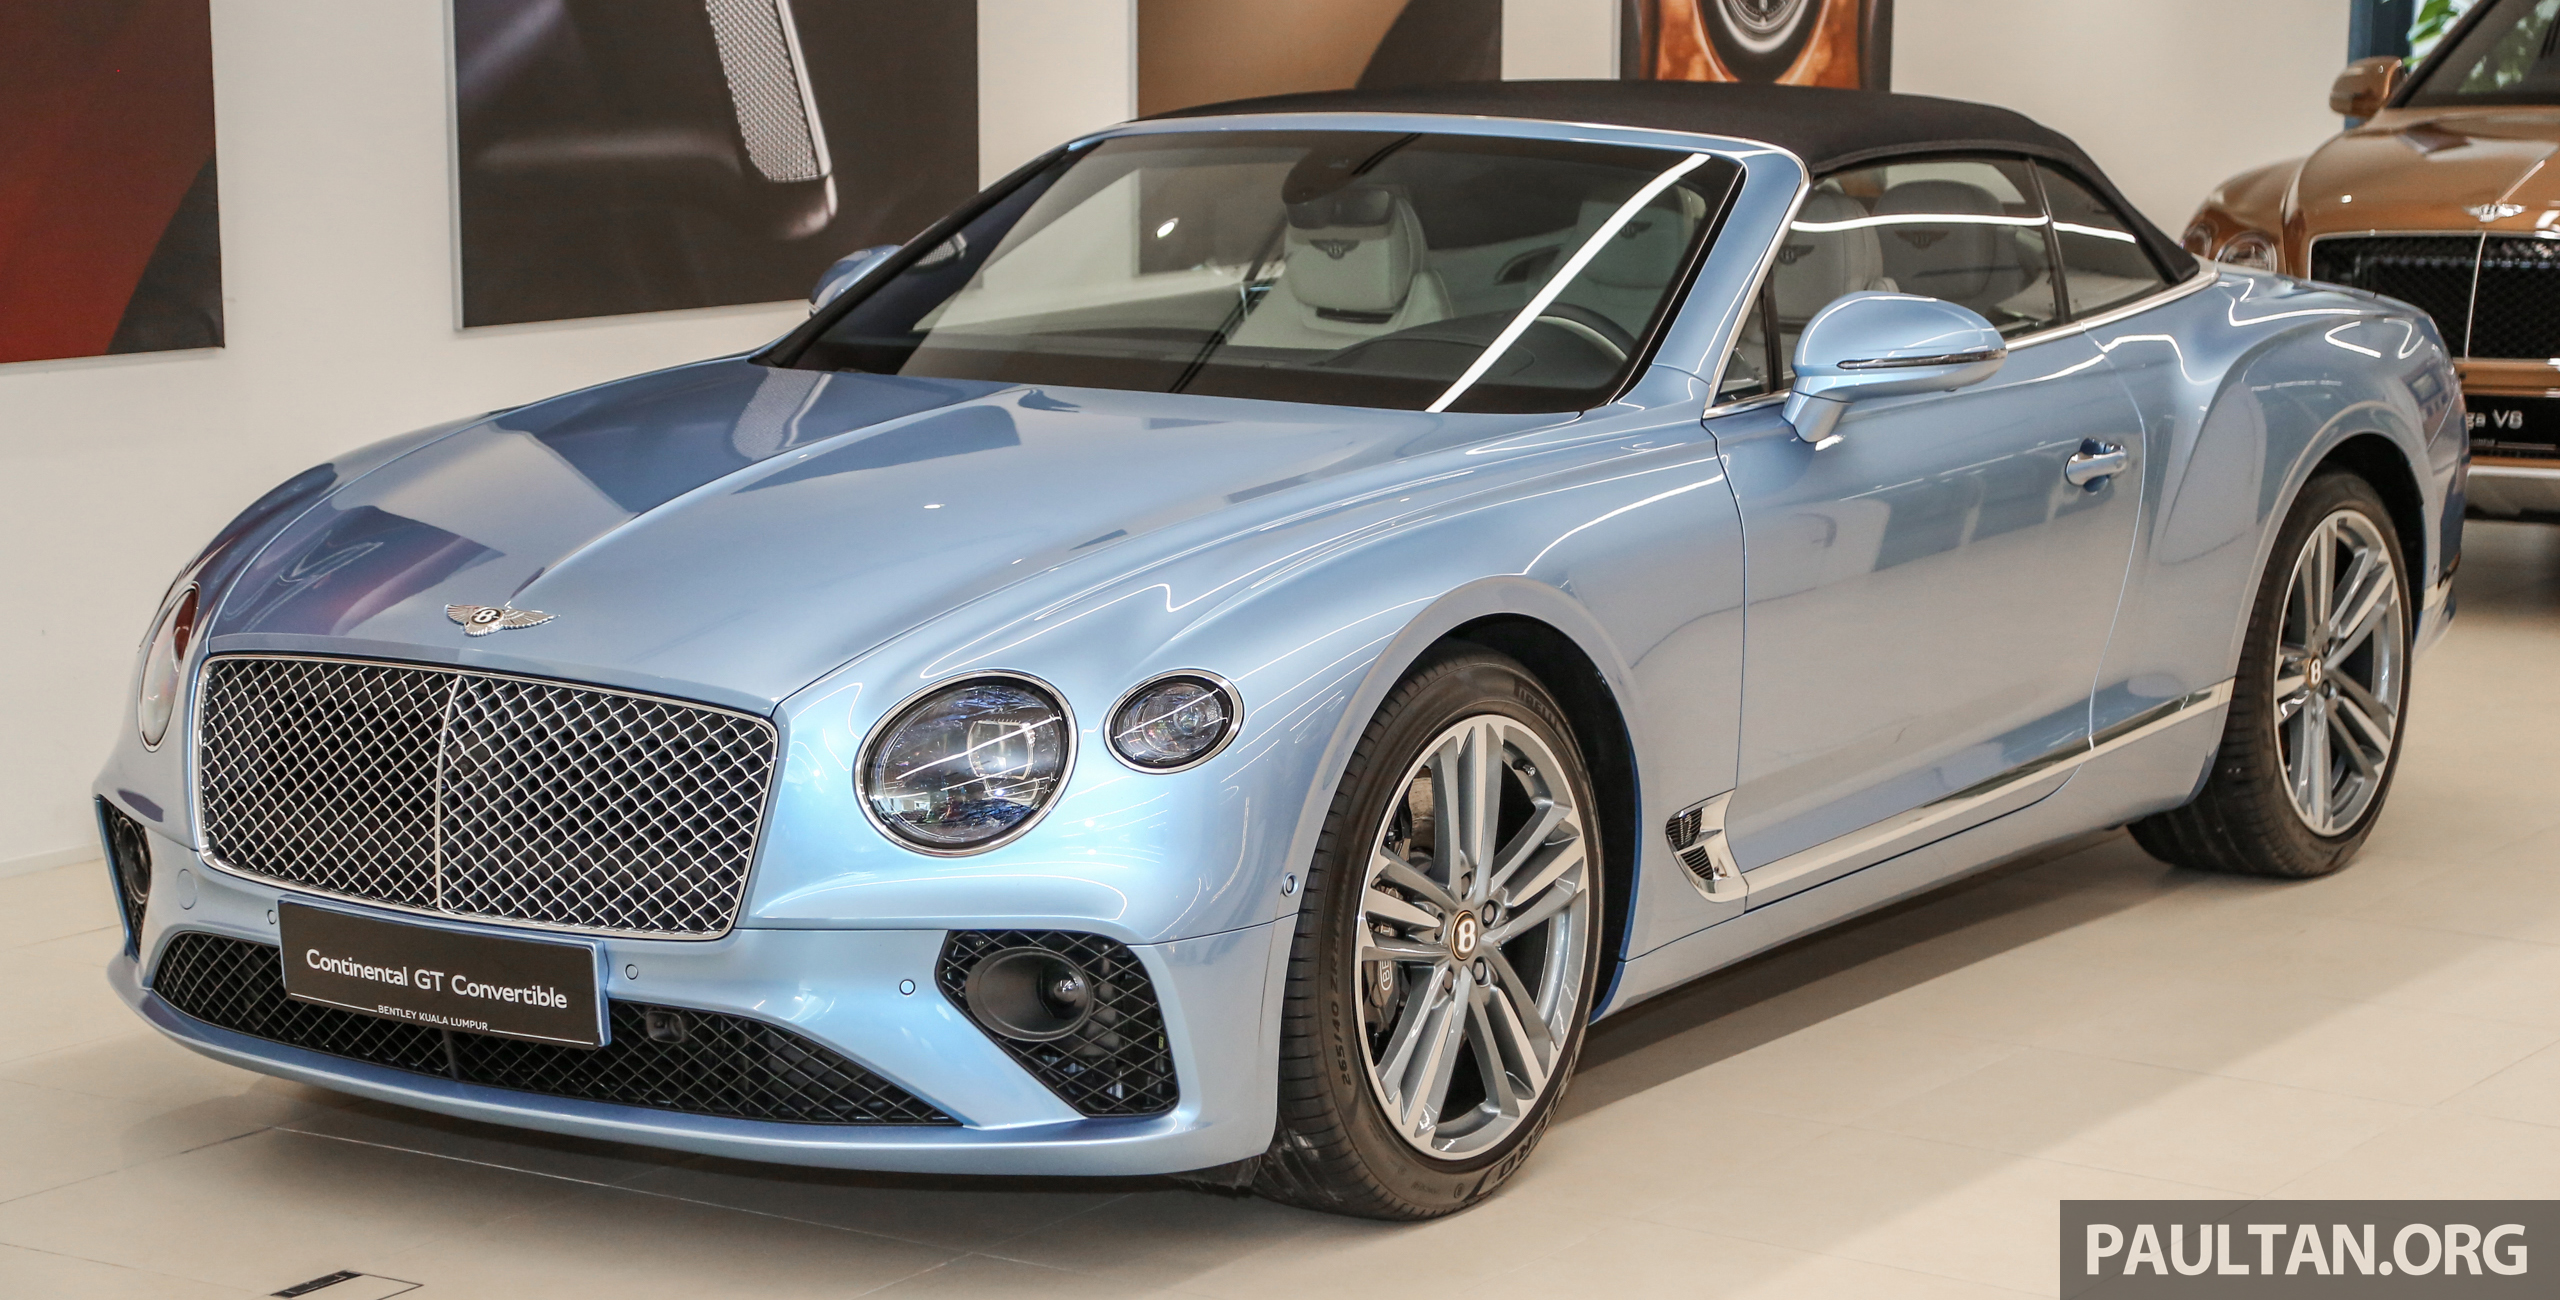 Bentley Continental Gt Convertible Previewed In Malaysia Drop Top Priced From Rm2 24 Million Paultan Org